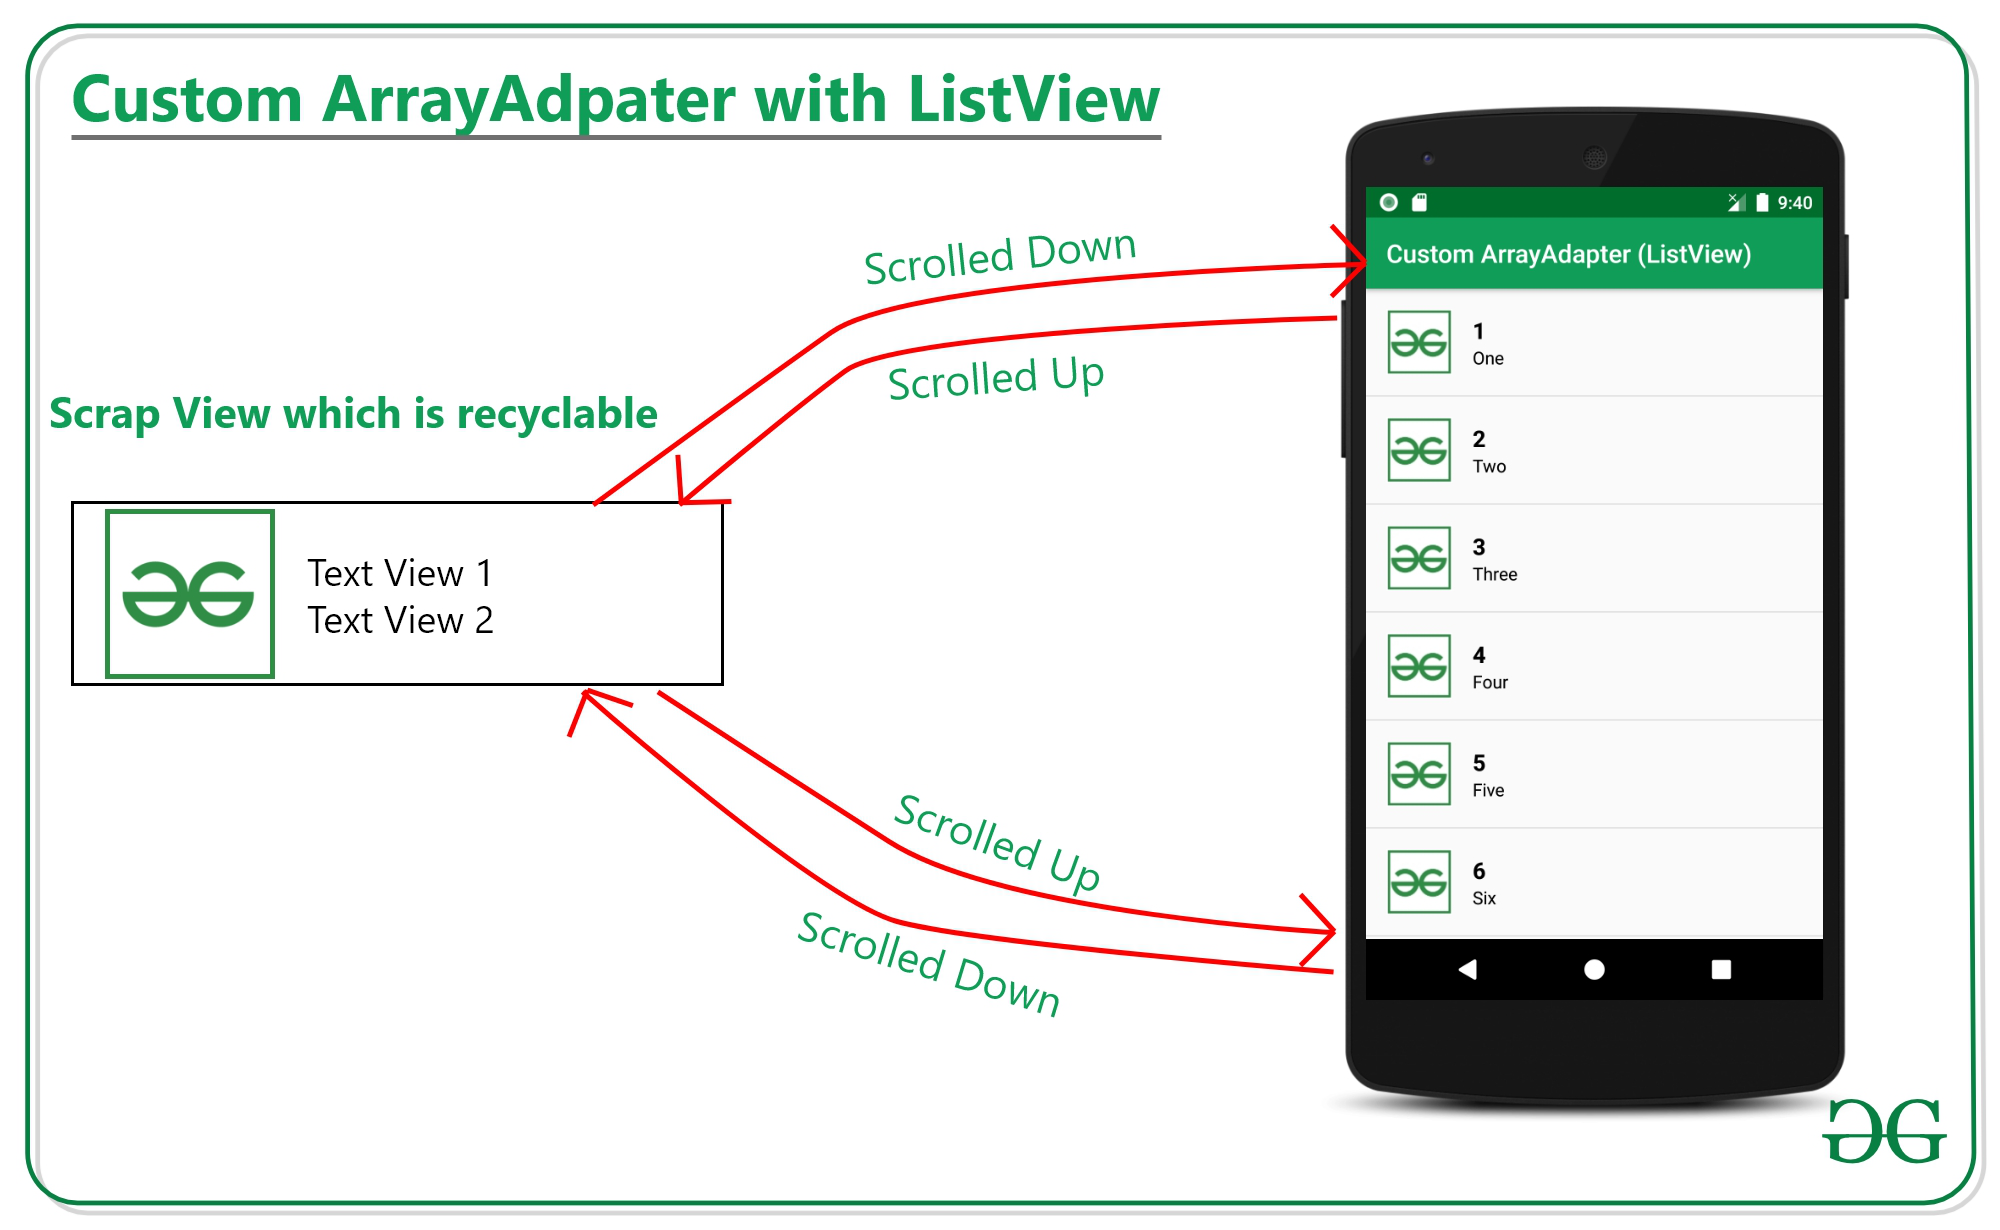 Custom ArrayAdapter with ListView in Android